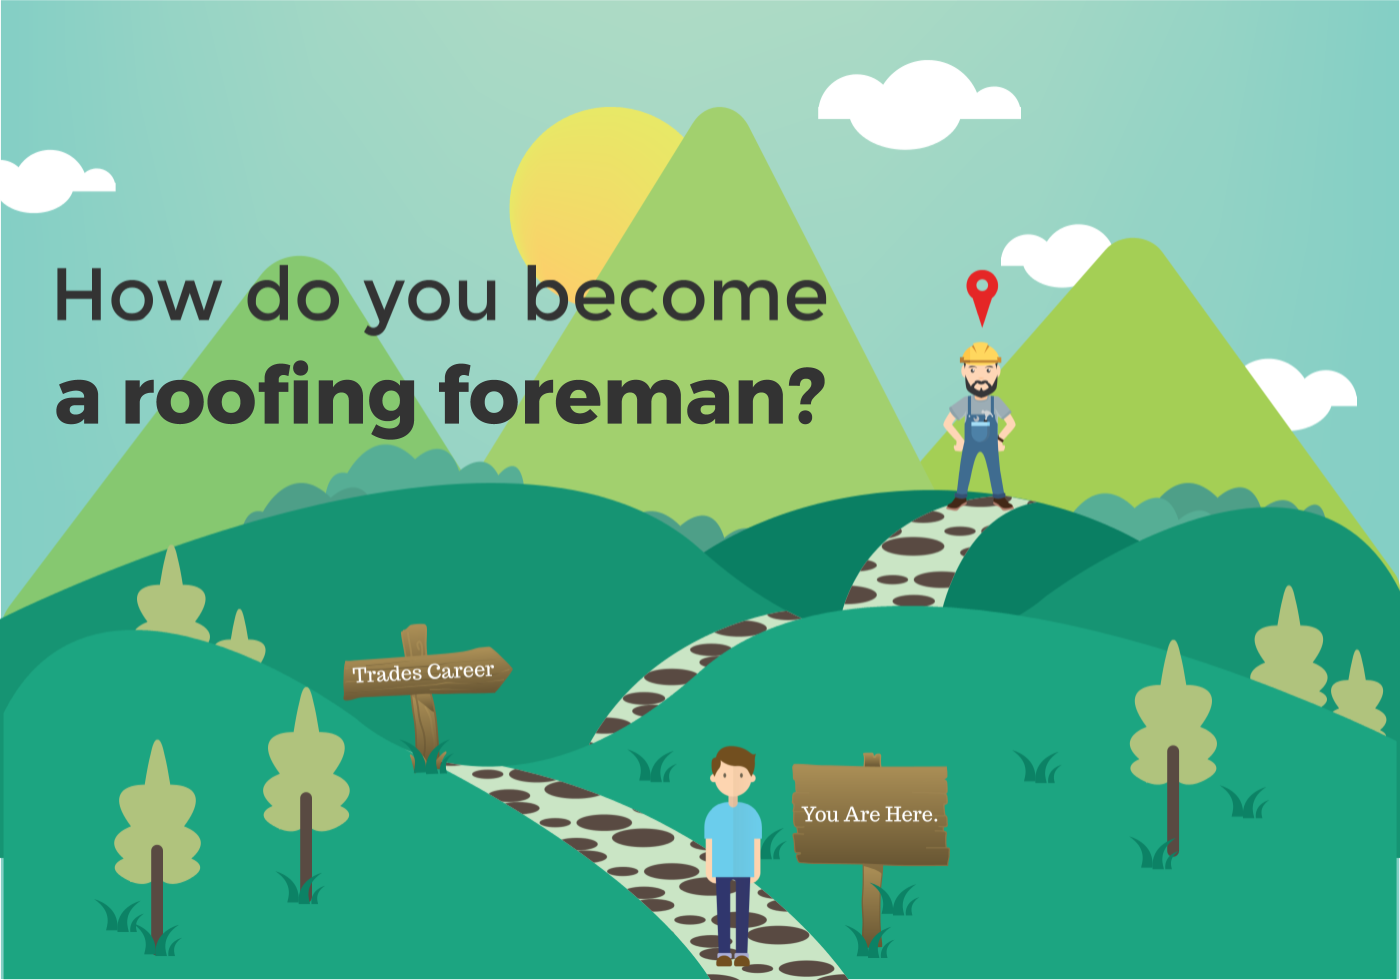 Roofing Foreman: Job Description, Salary, Requirements, & More ...